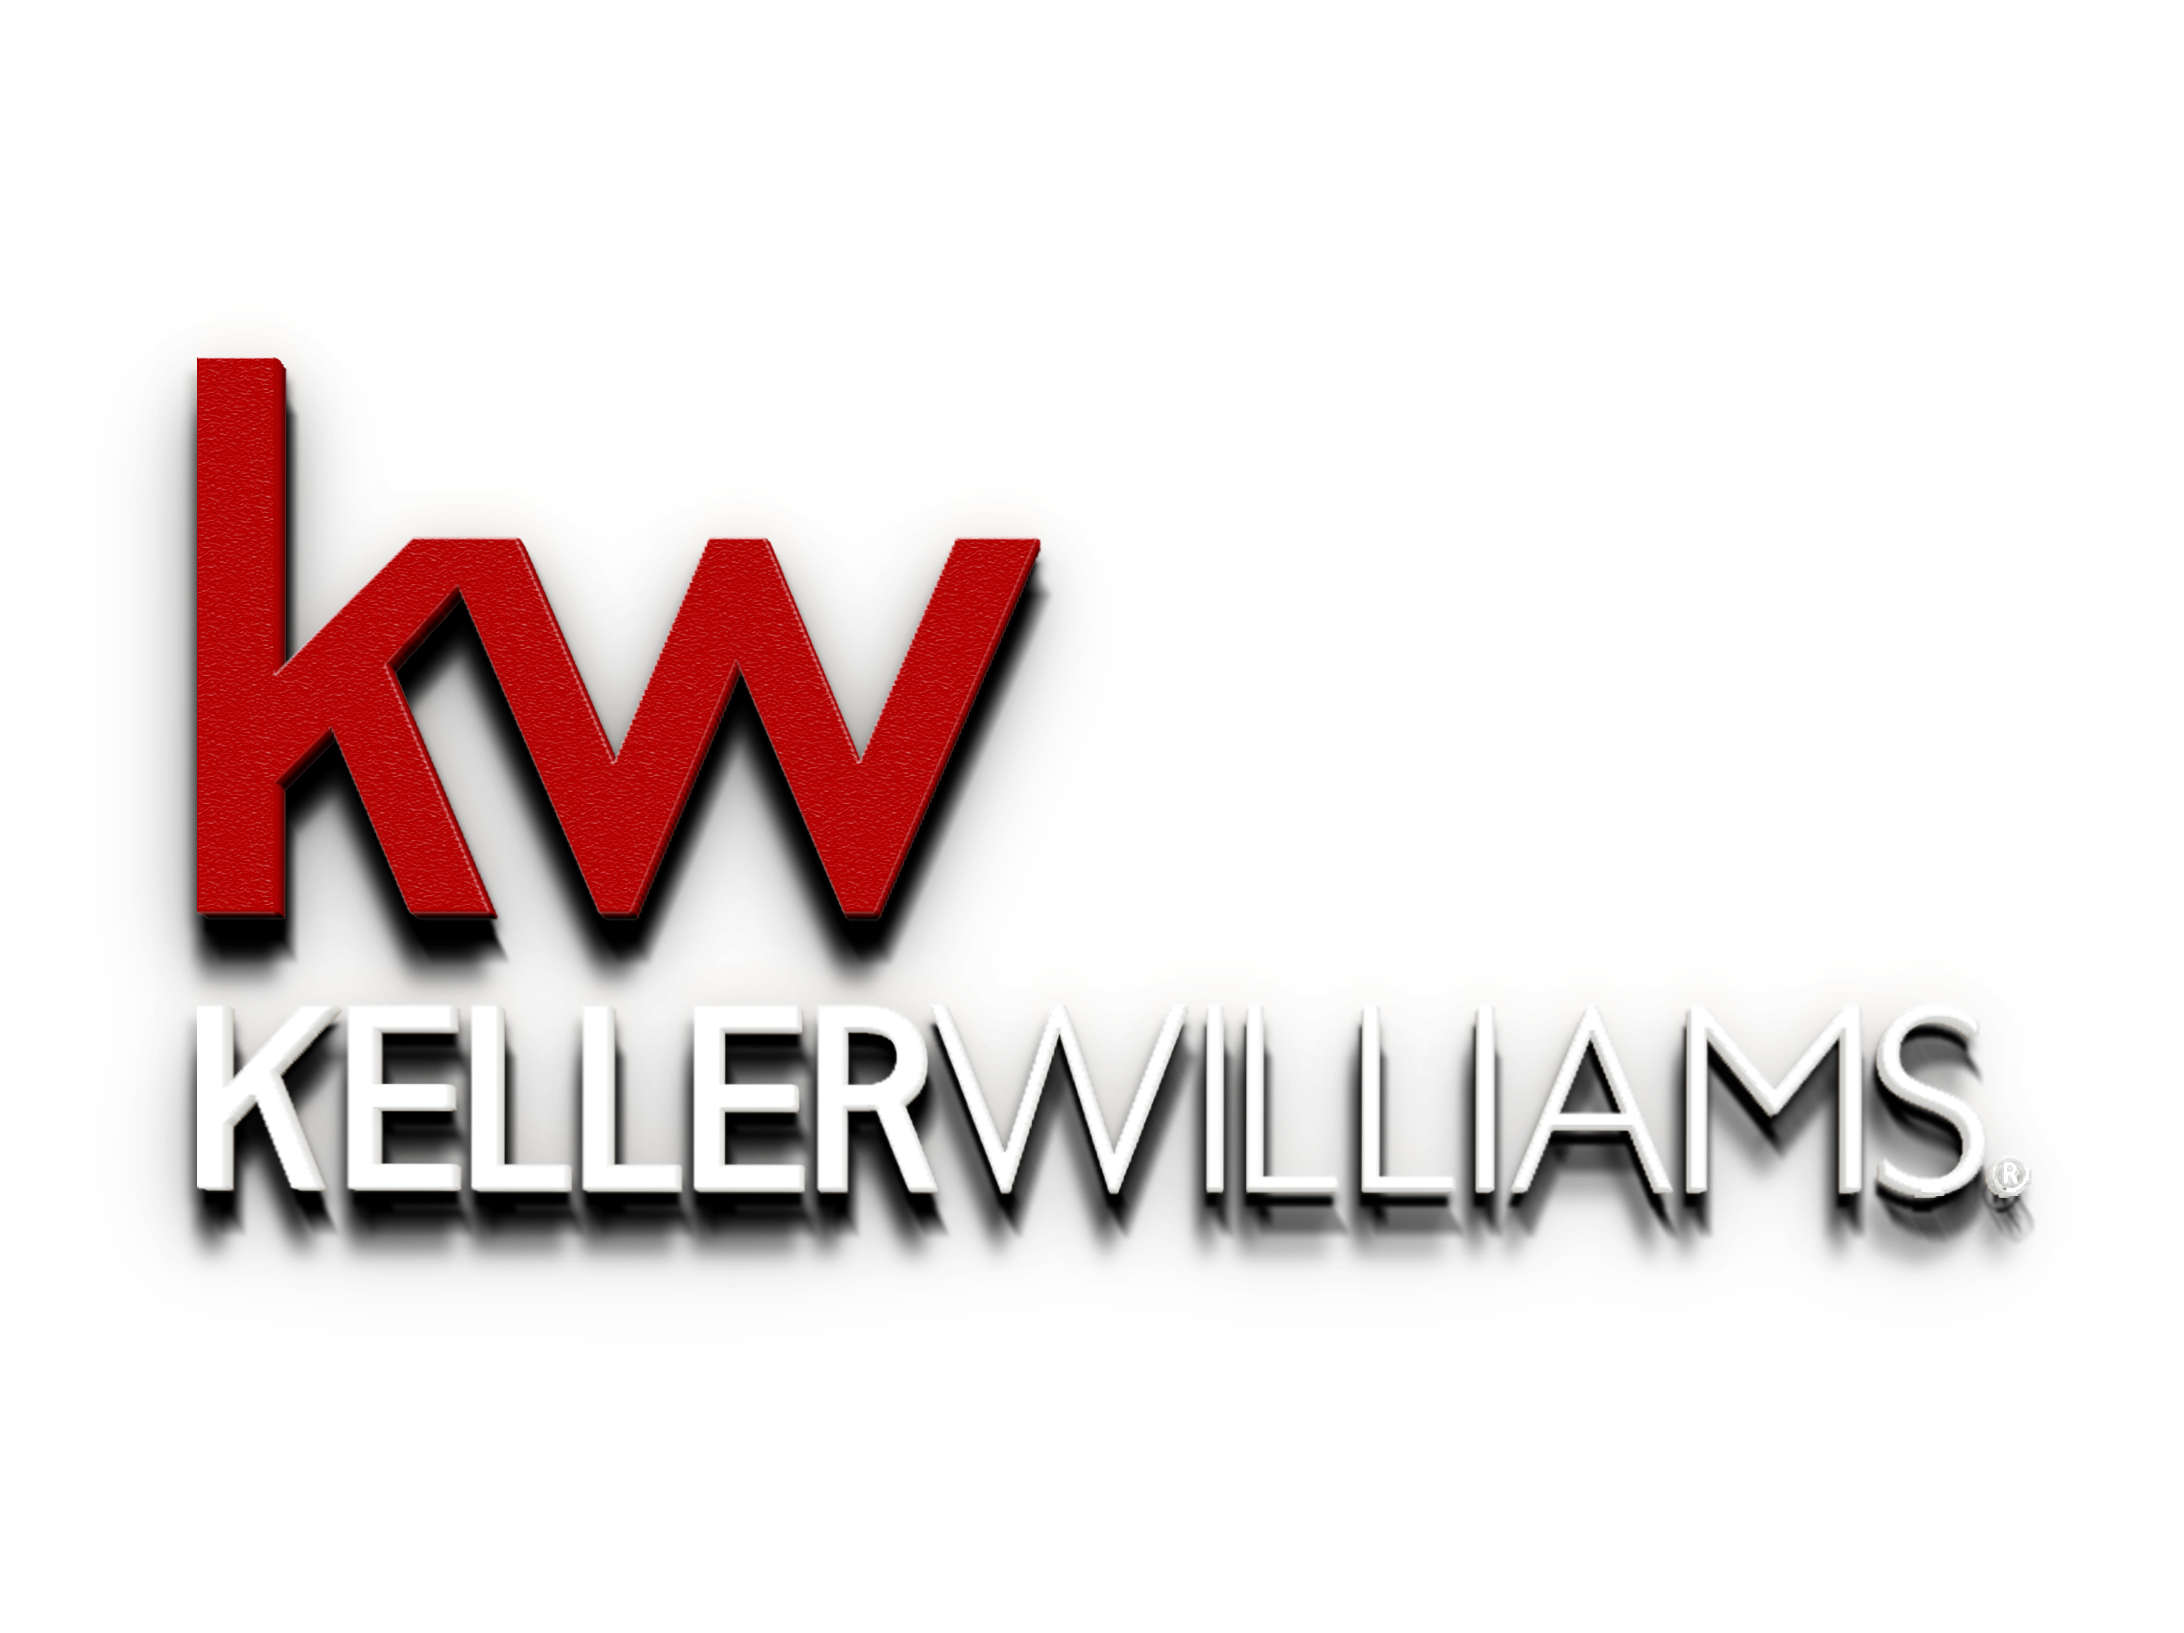 Keller Williams Glendale logo